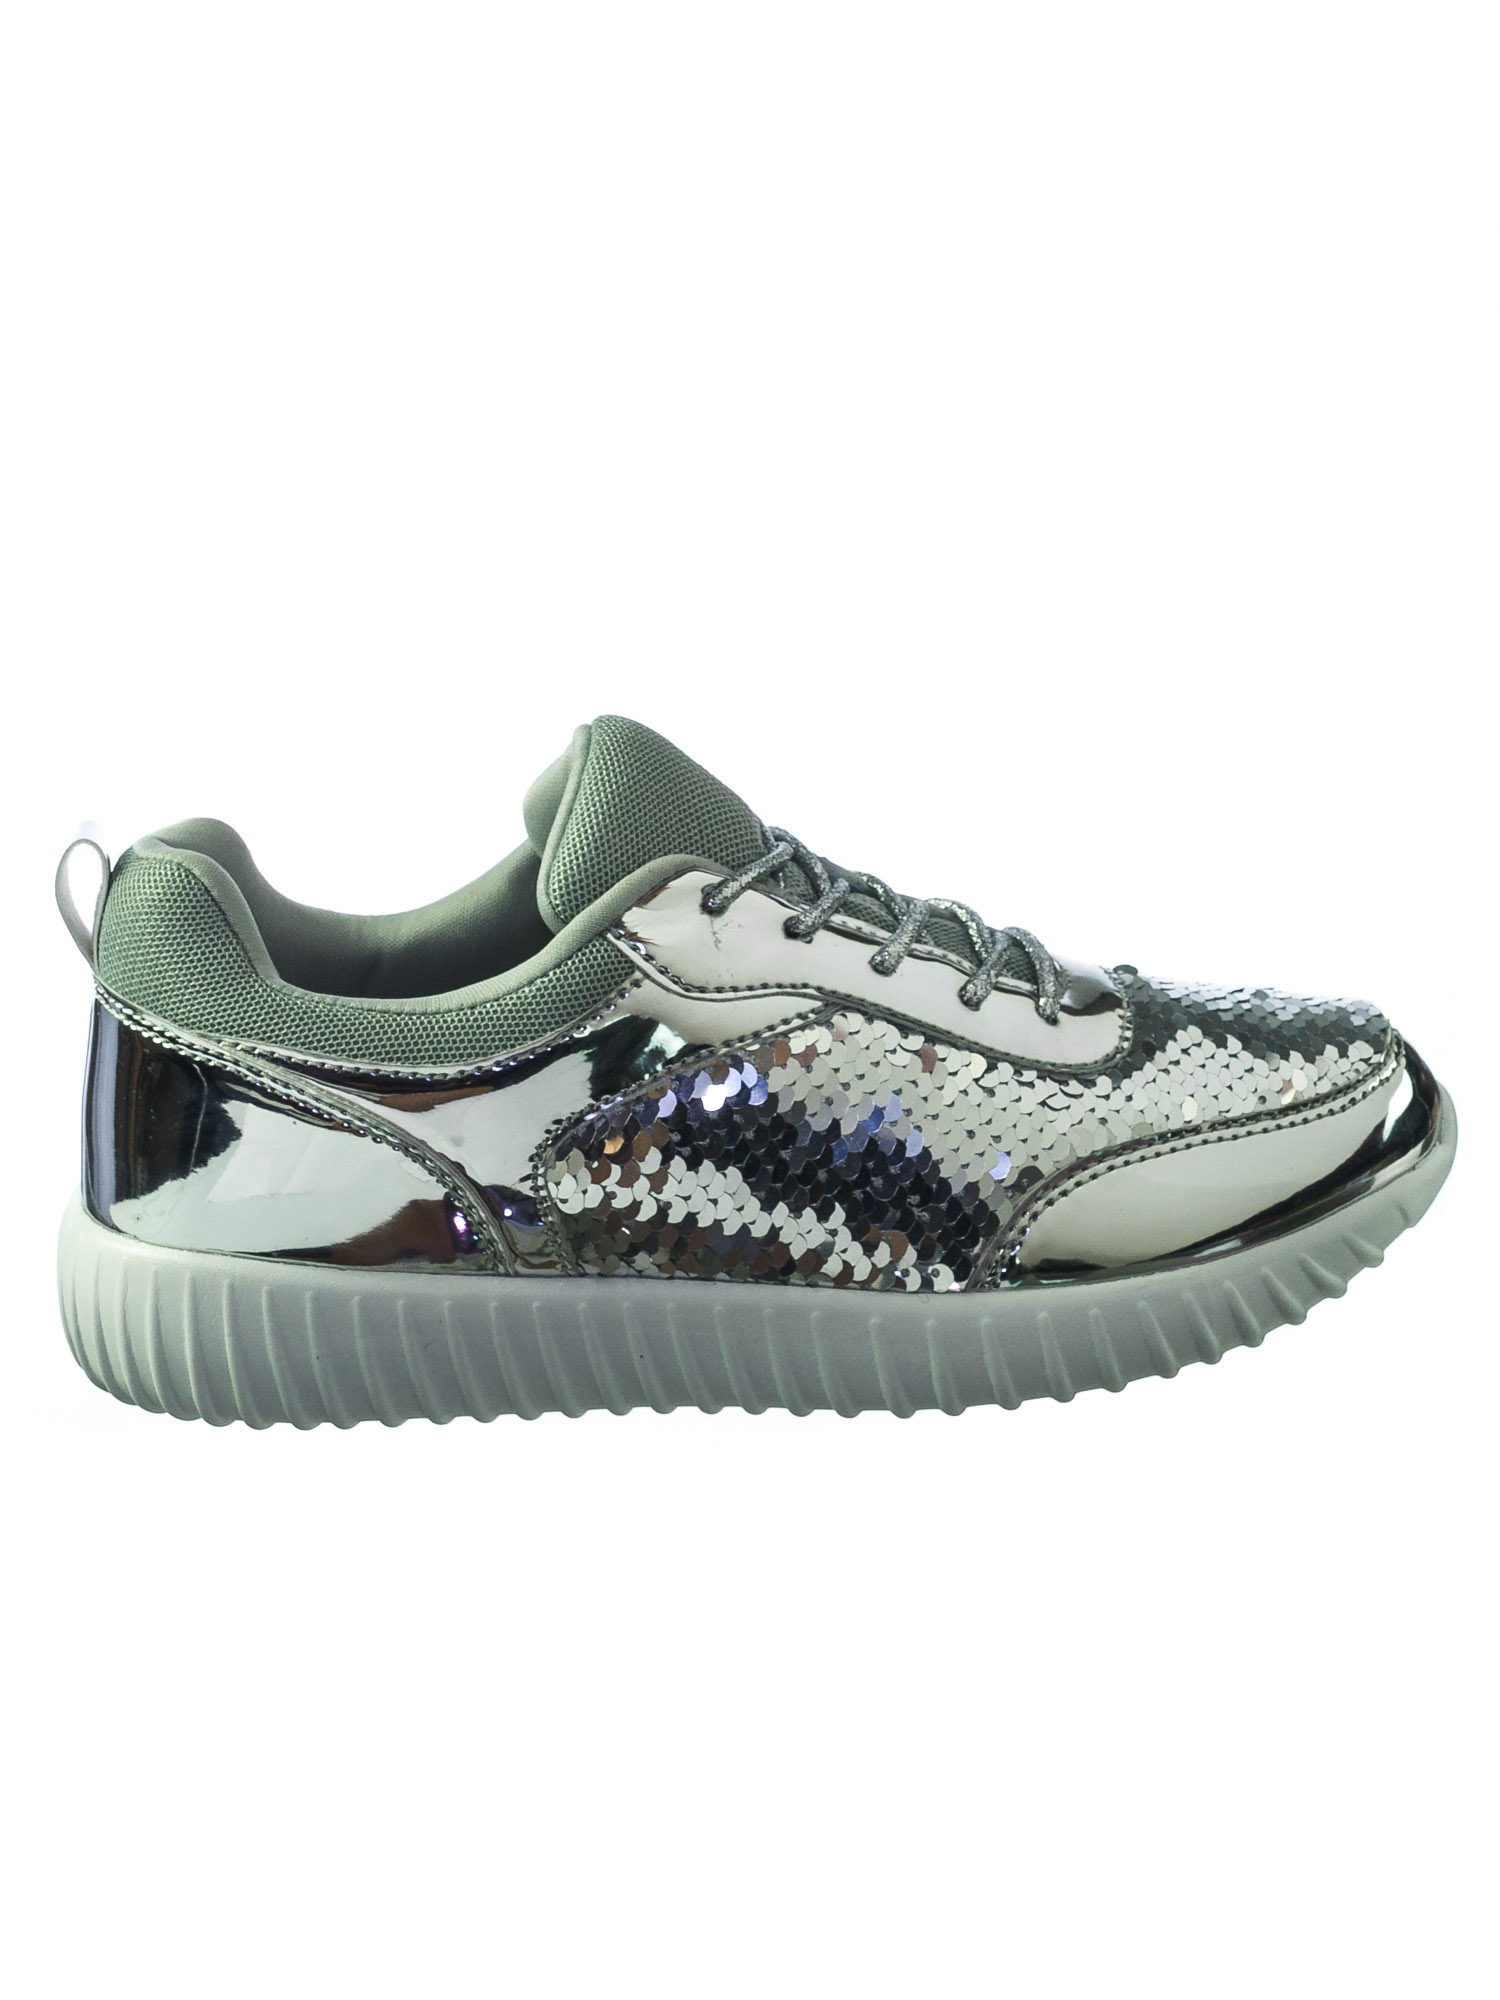 d0d566b3acc6 Forever Link - Remy28 by Forever Link, Mermaid Metallic Sequins Glitter  Lace Up Sneaker w White Outsole - Walmart.com